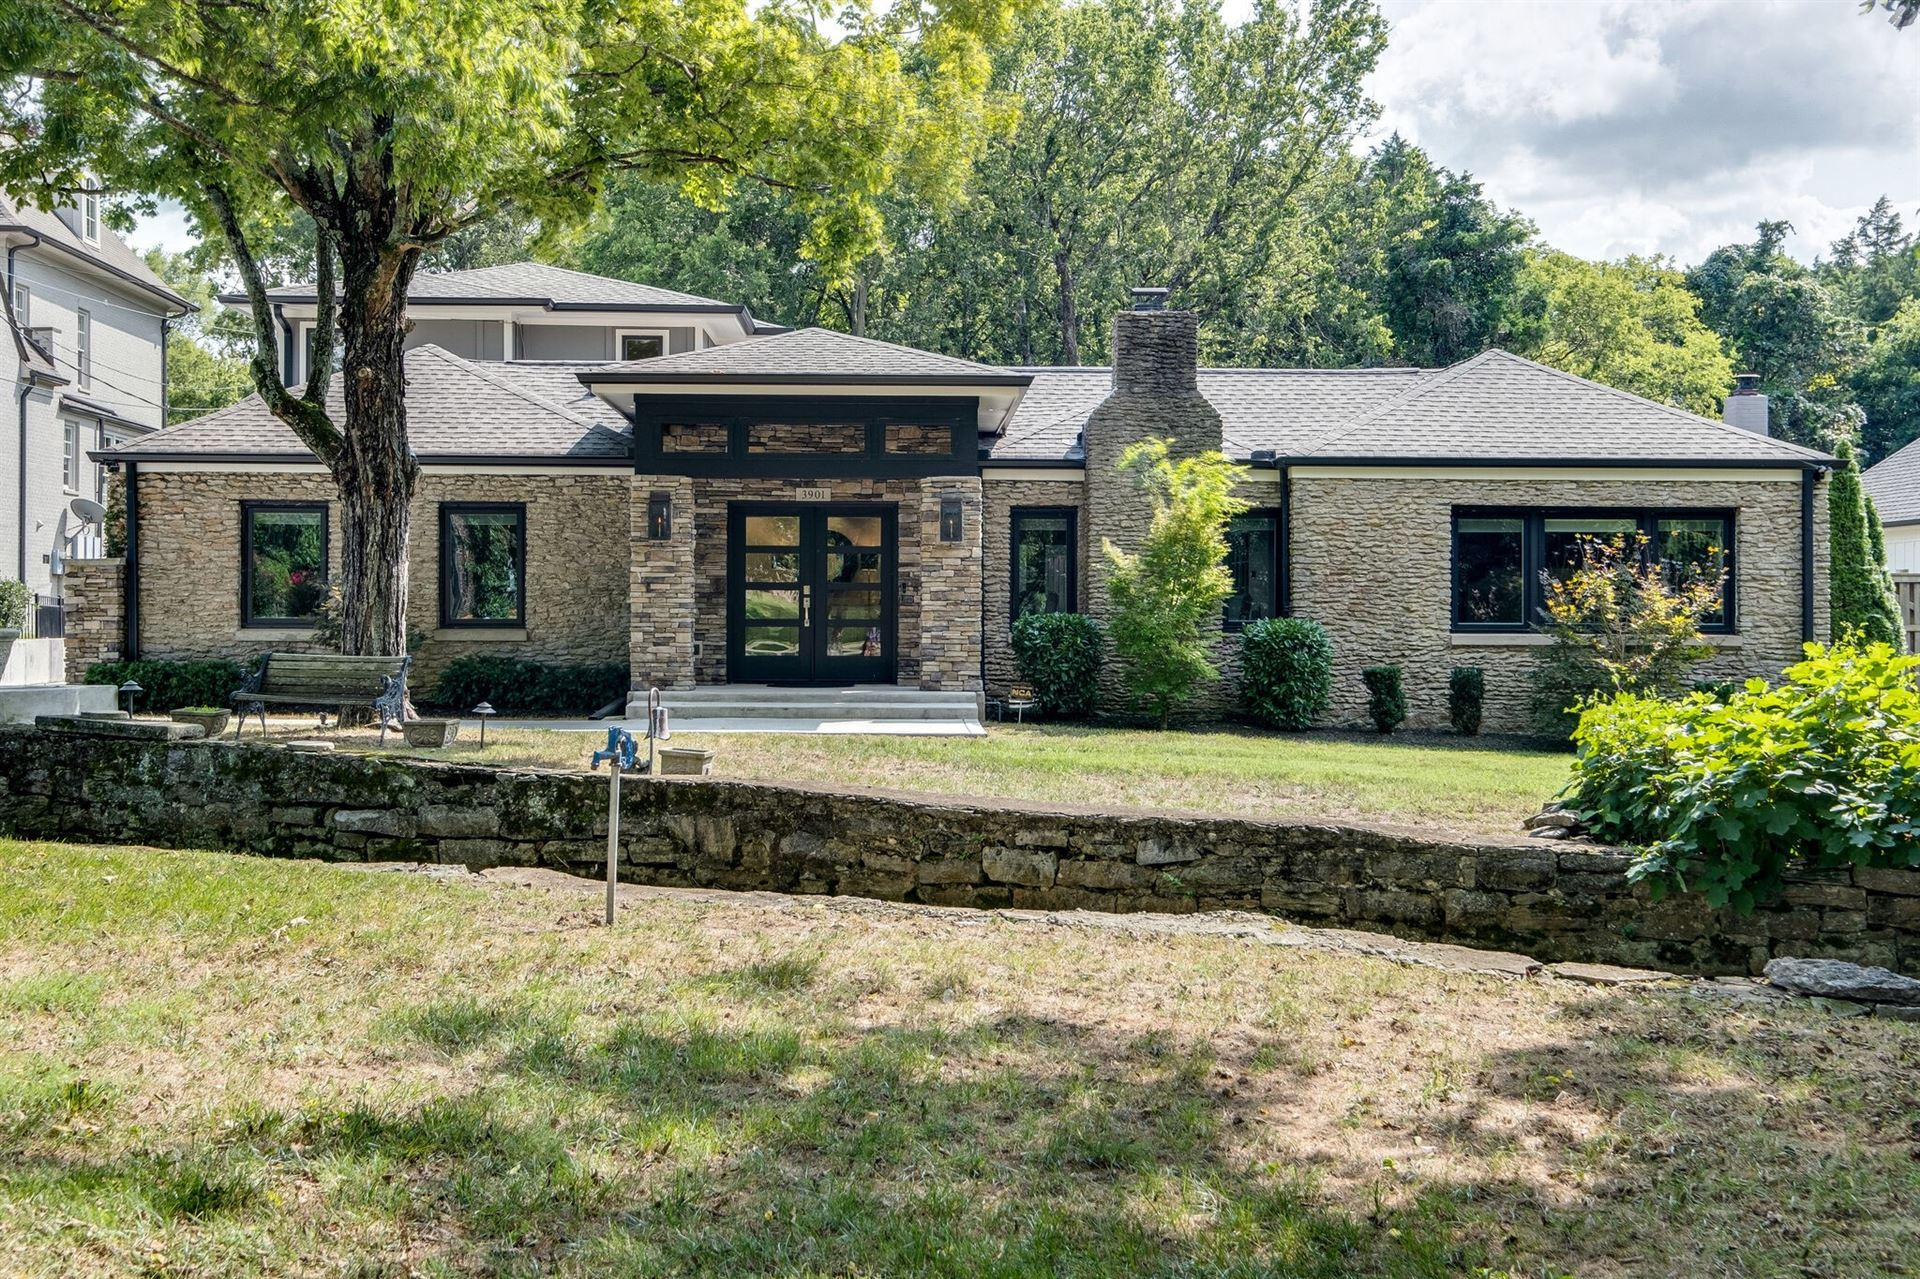 Photo of 3901 Trimble Road, Nashville, TN 37215 (MLS # 2214176)